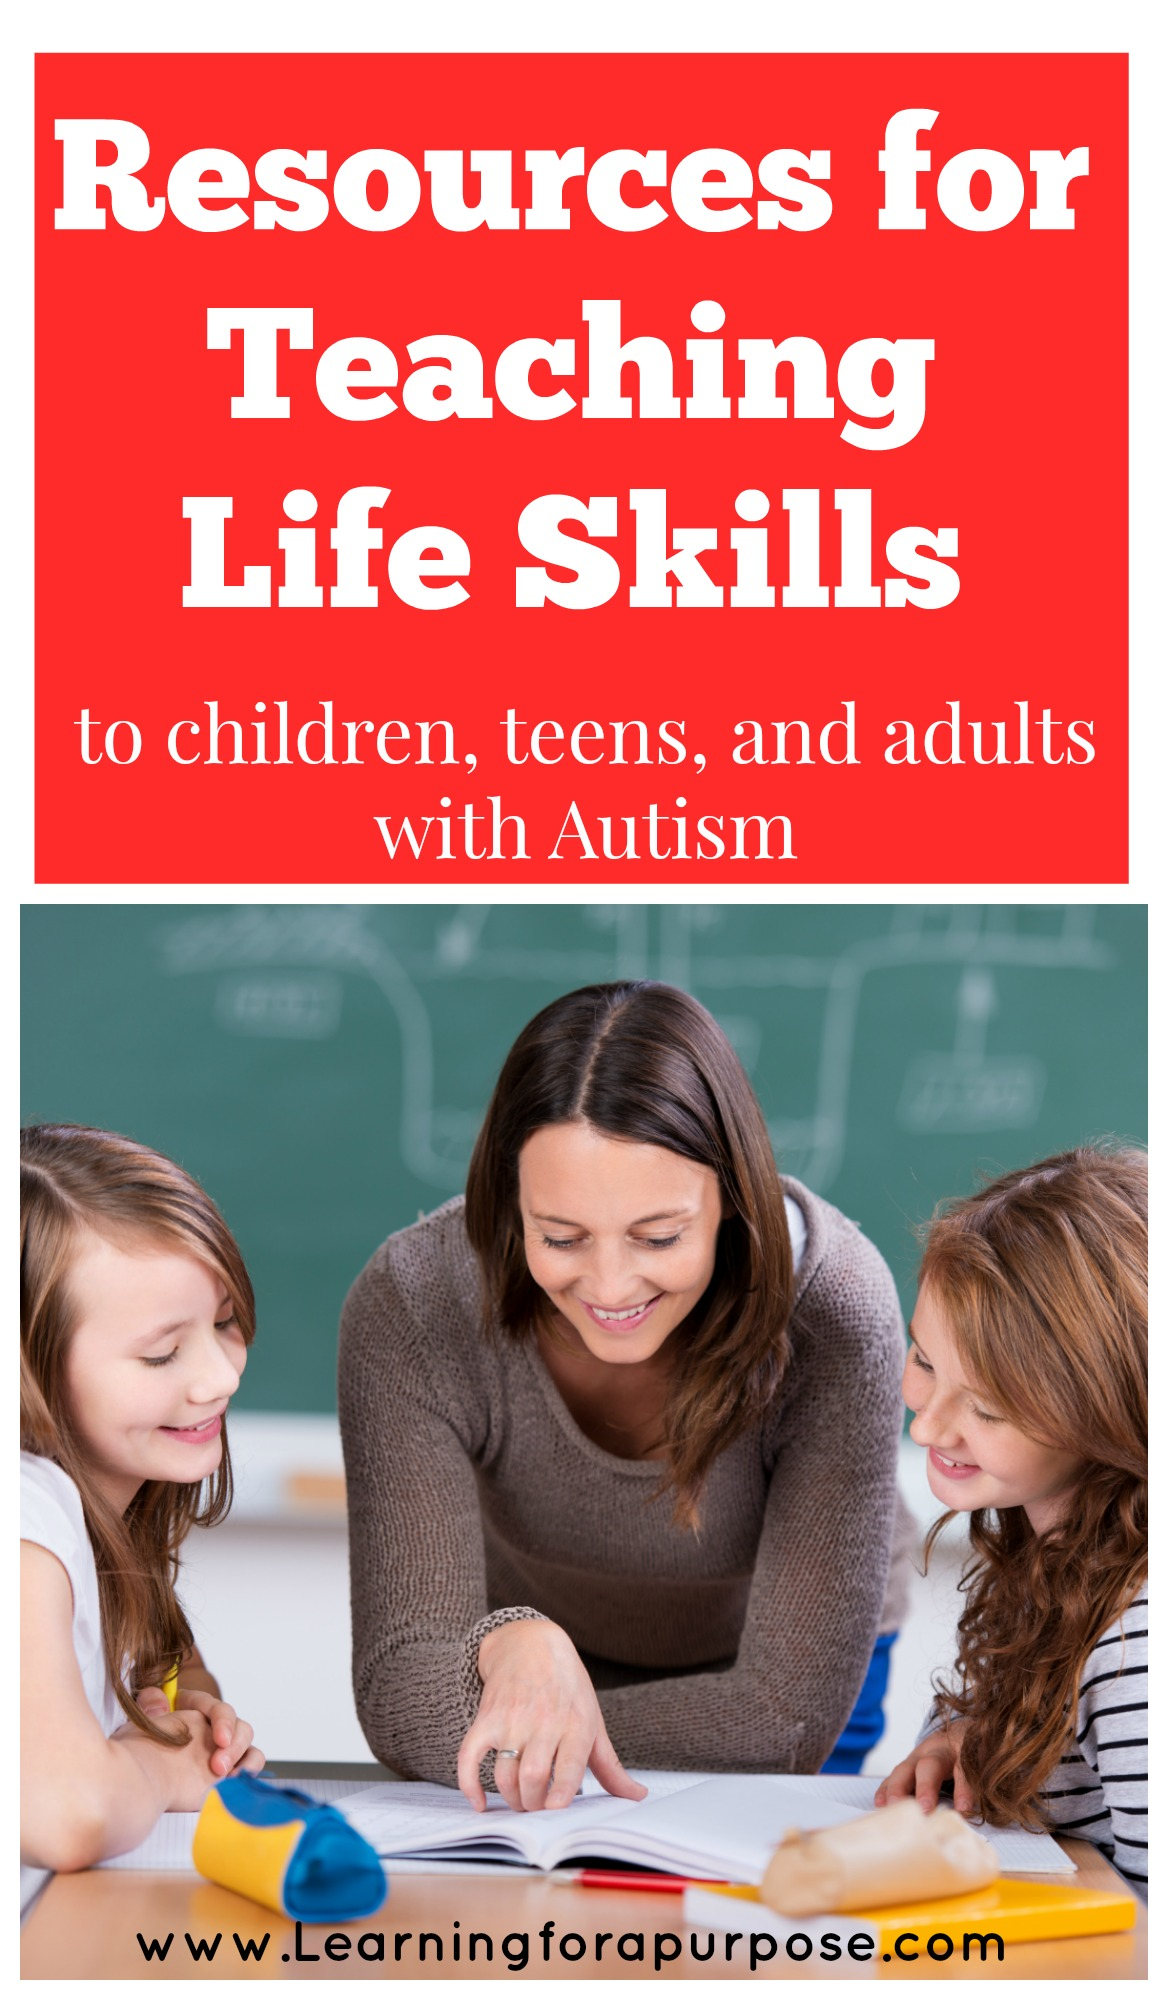 Resources for Teaching Life skills to children, teens, and adults with autism #lifeskills #autism